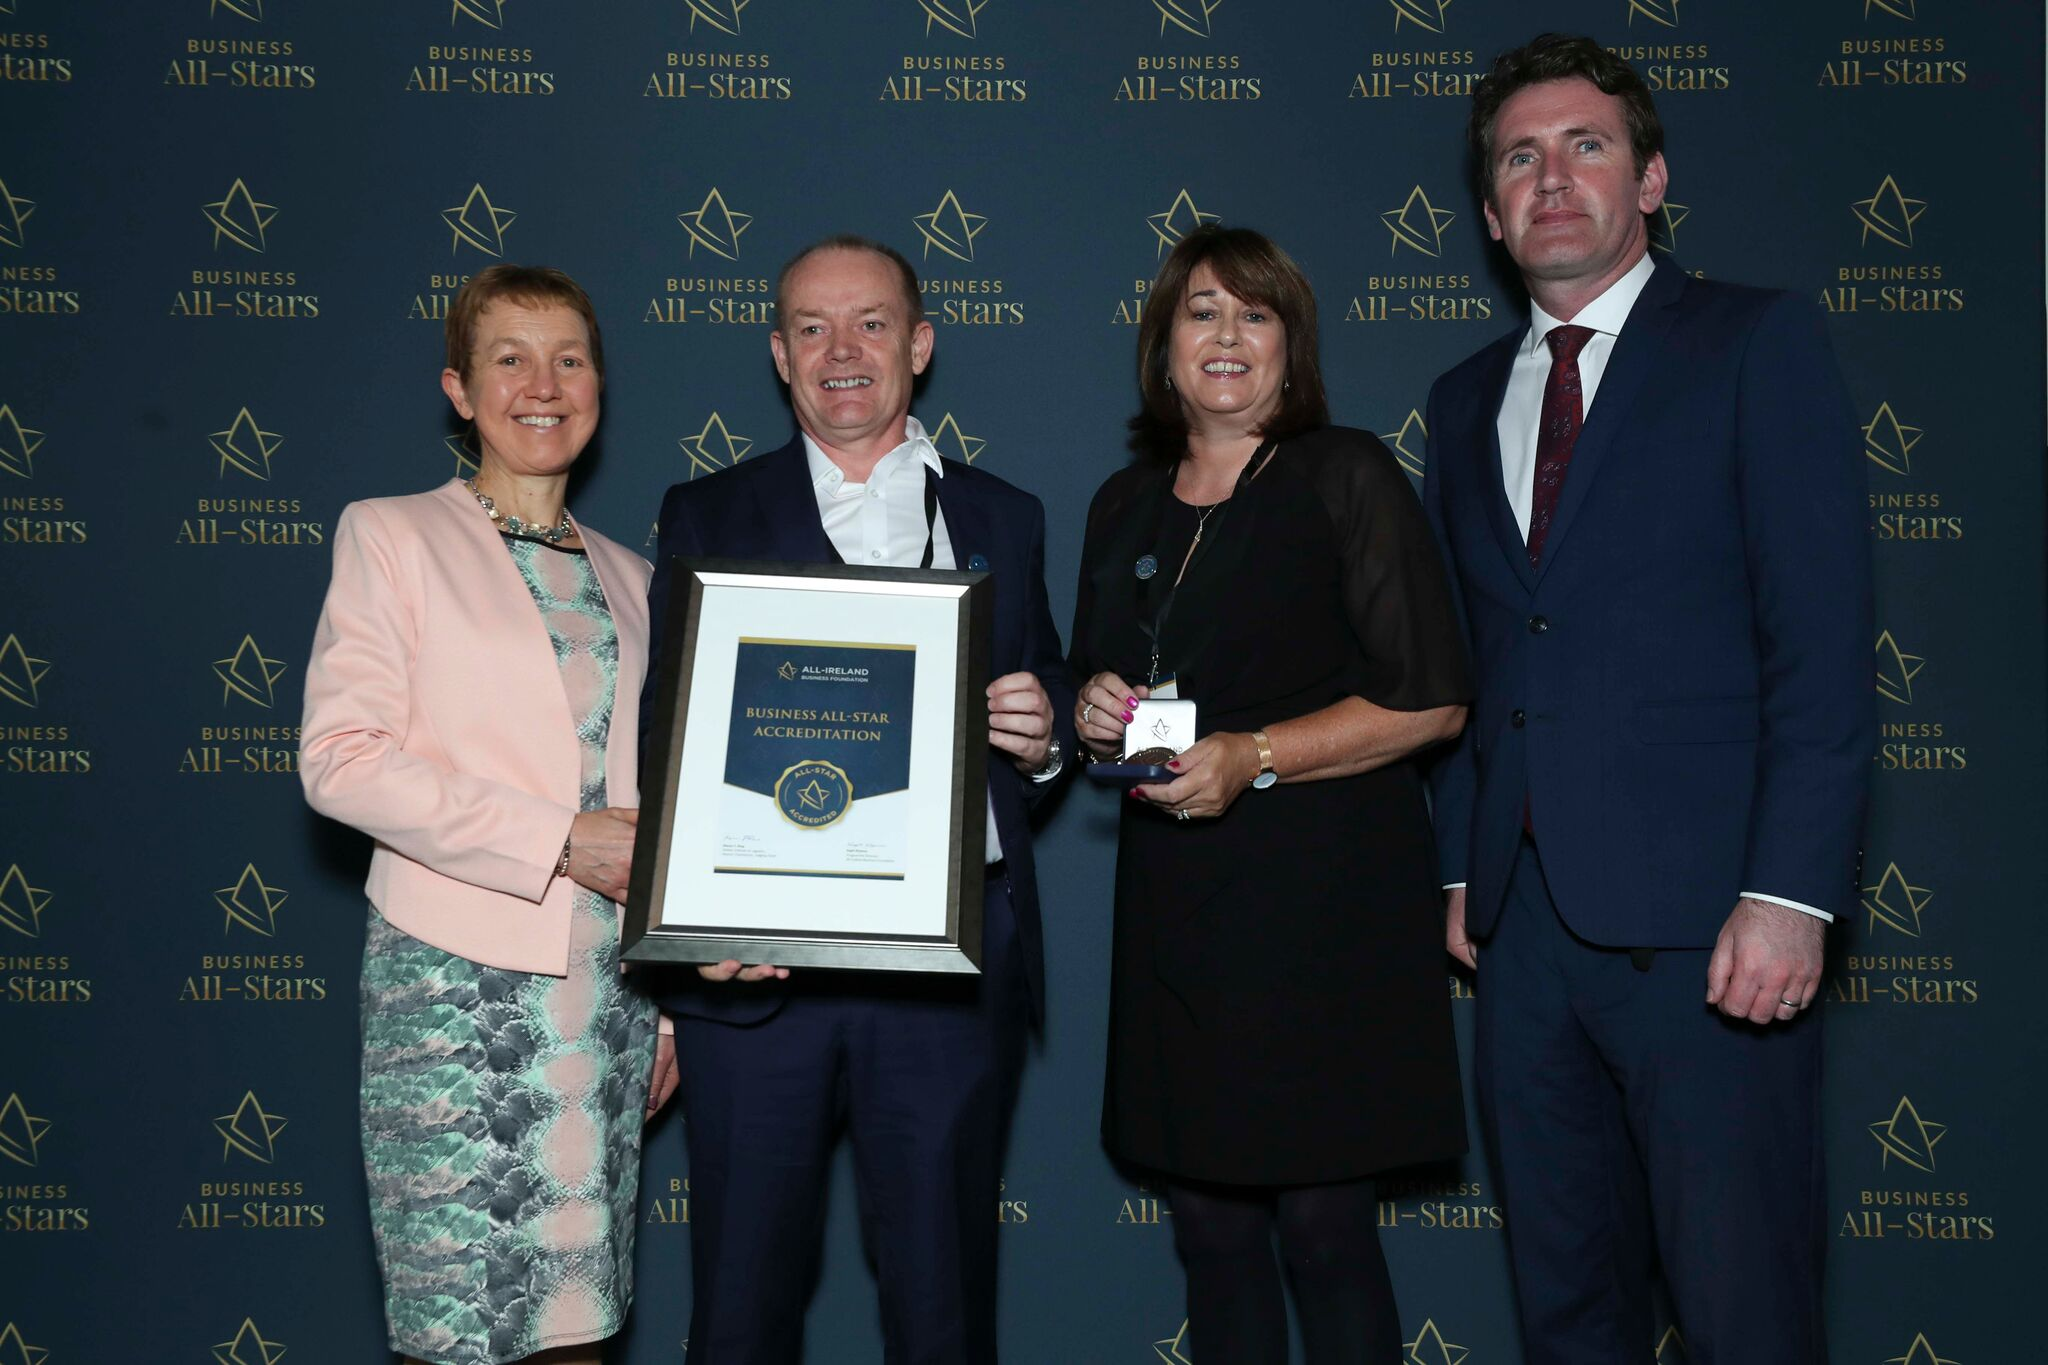 Brian & Theresa Colbert- Irish Institute of NLP receiving Business All-Star Accreditation at Croke Park from Dr Briga Hynes, Kemmy Business School, University of Limerick and Senator Aodhán Ó Ríordáin, Spokesperson on Education and Skills, Gaeilge and the Gaeltacht.